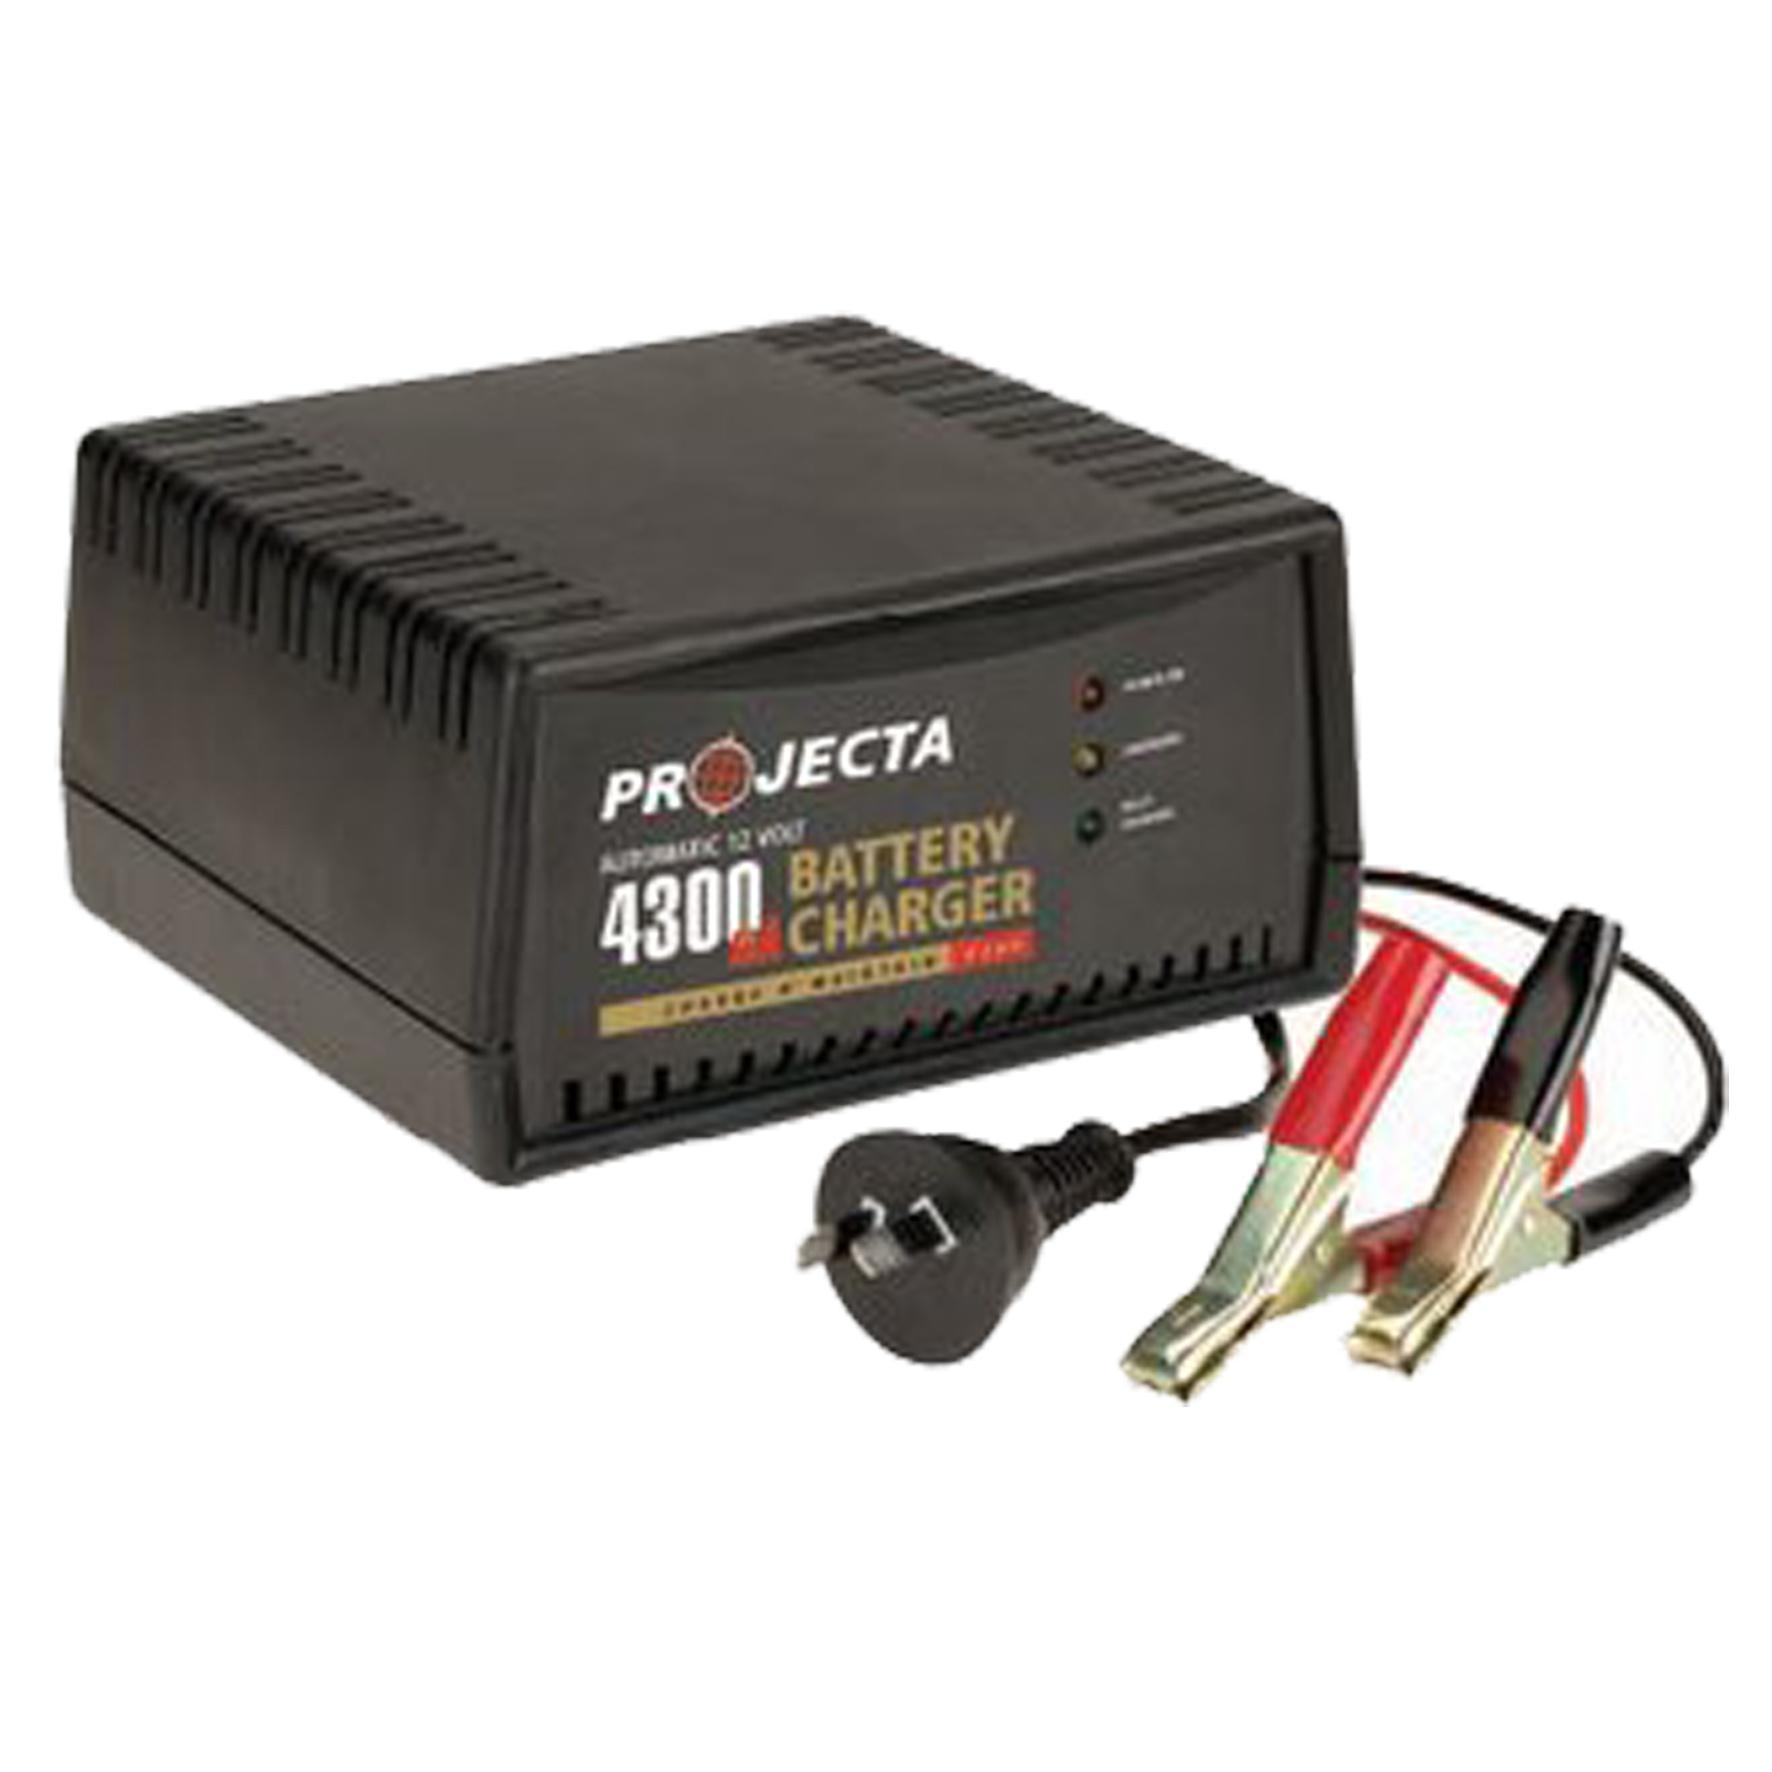 projecta ac600 battery charger home of 12 volt. Black Bedroom Furniture Sets. Home Design Ideas